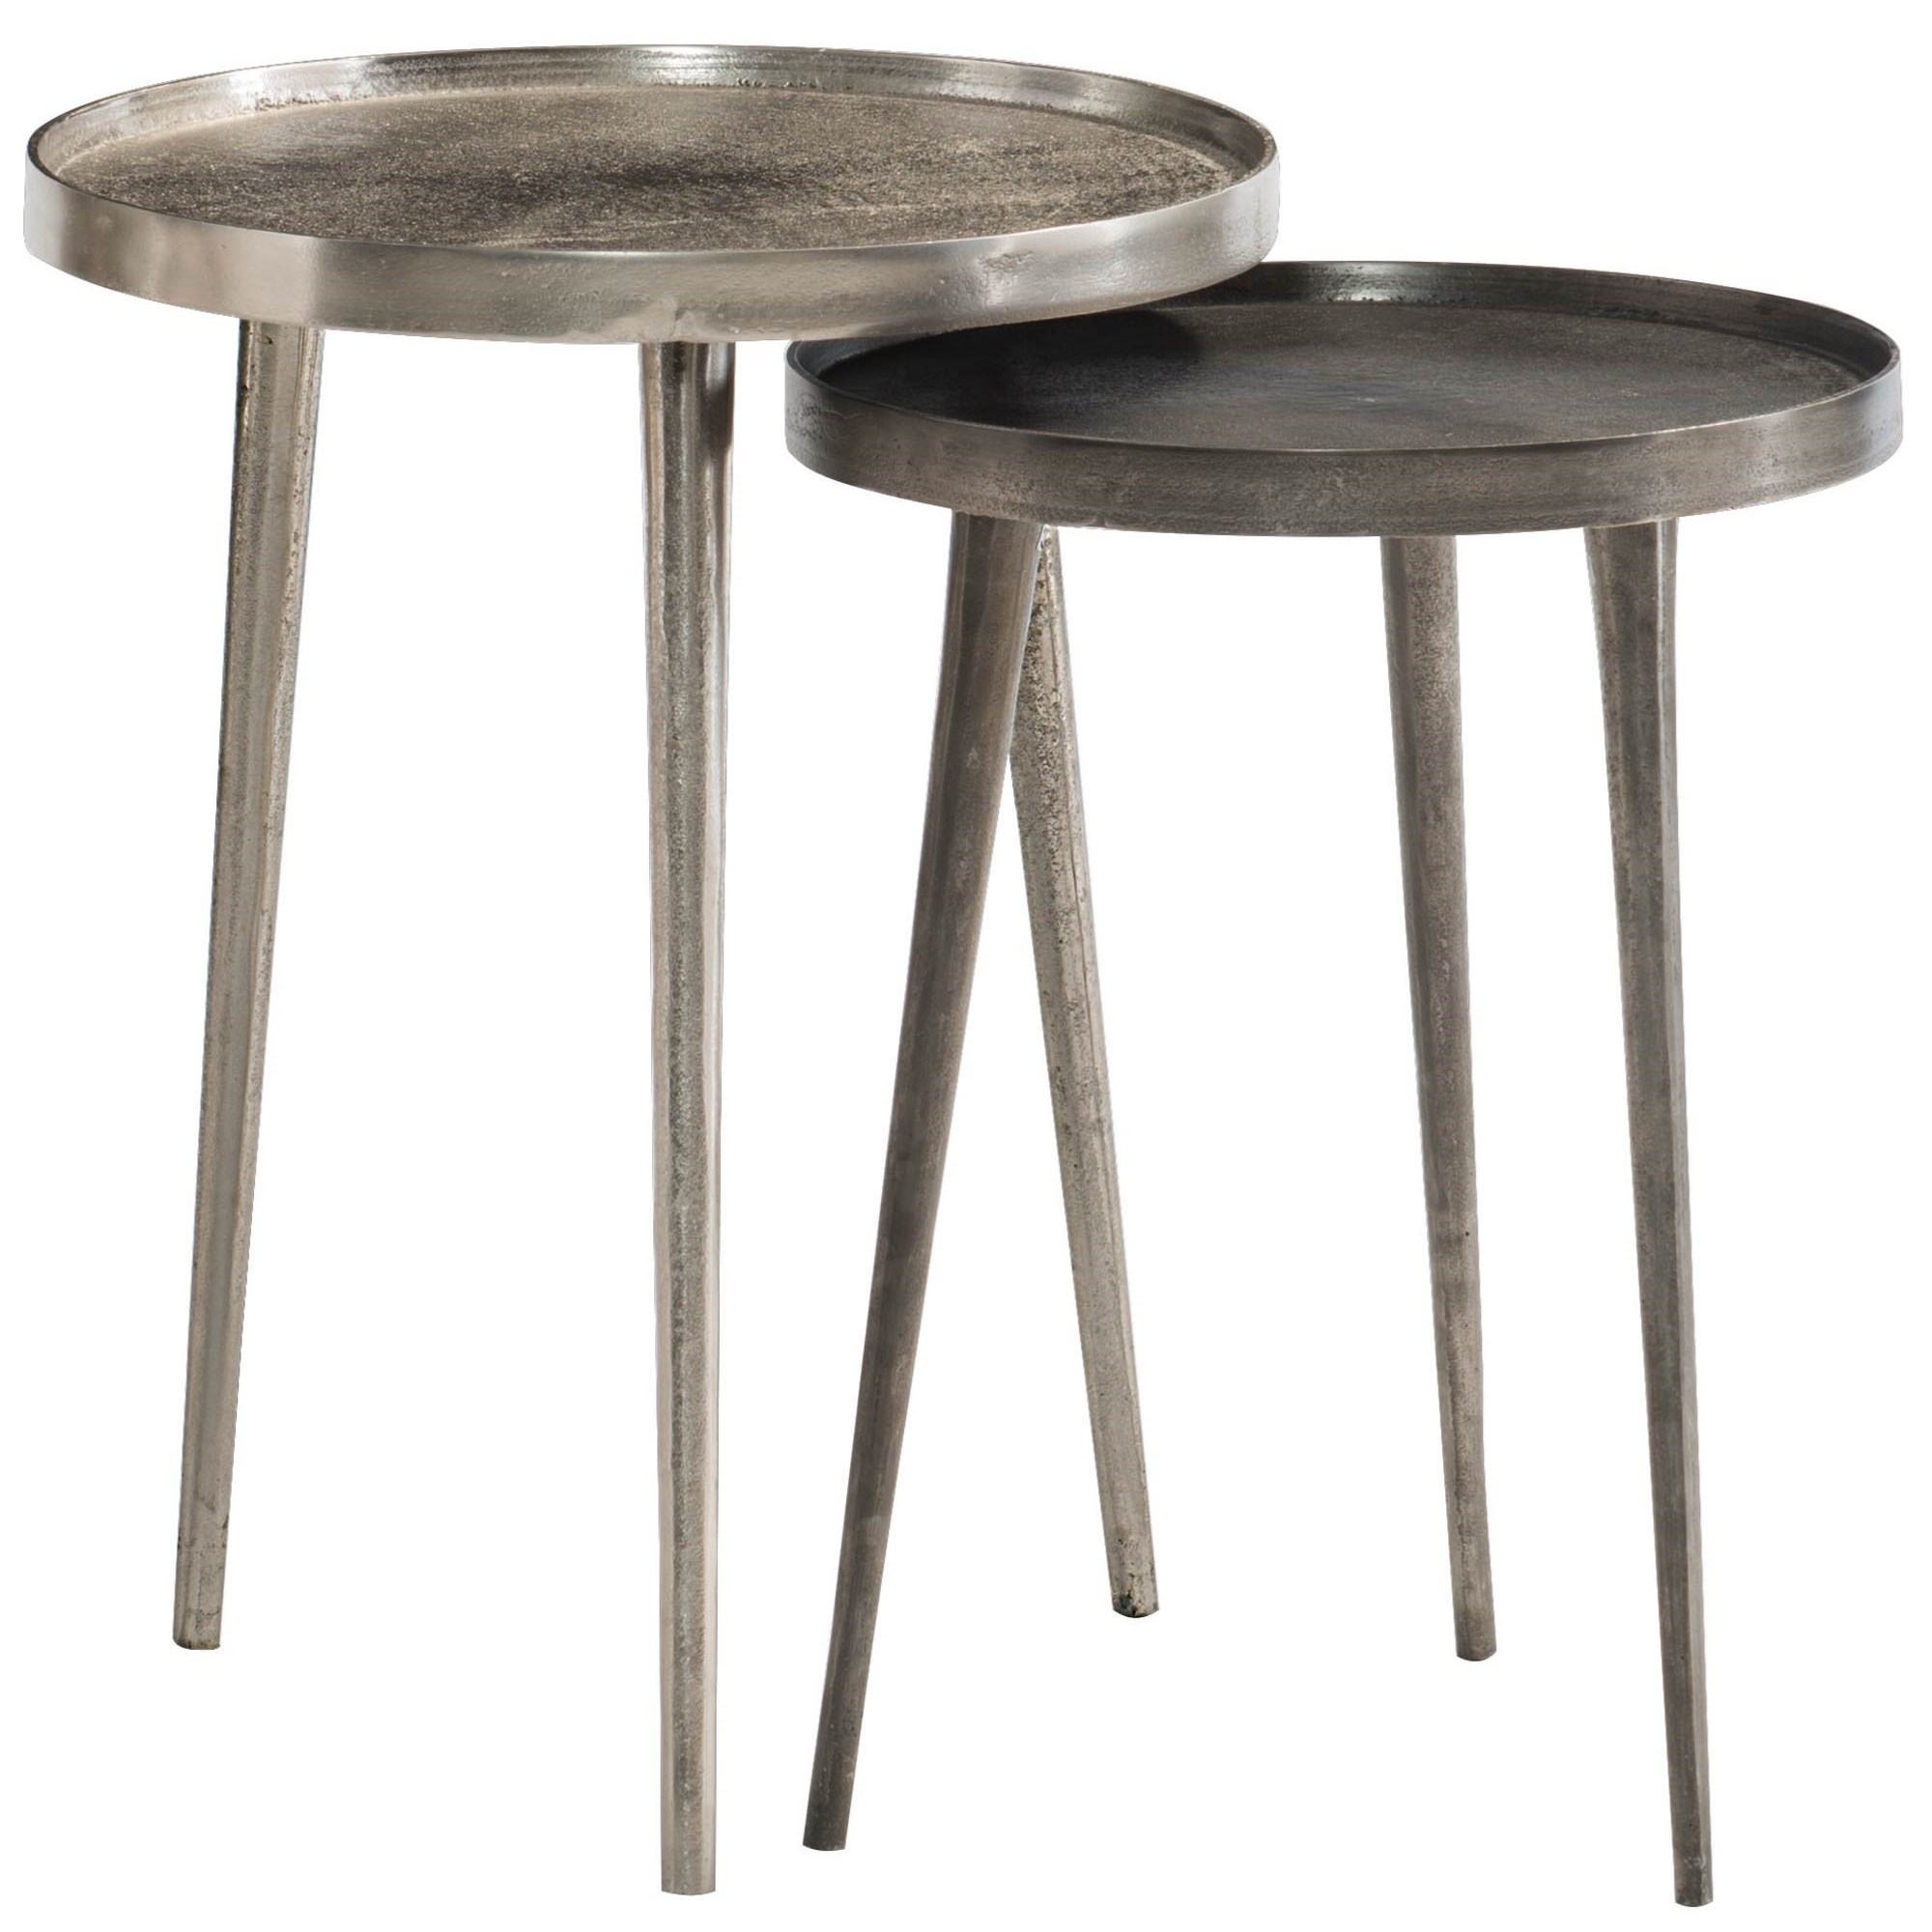 Interiors - Lex Nesting Table Set by Bernhardt at Darvin Furniture